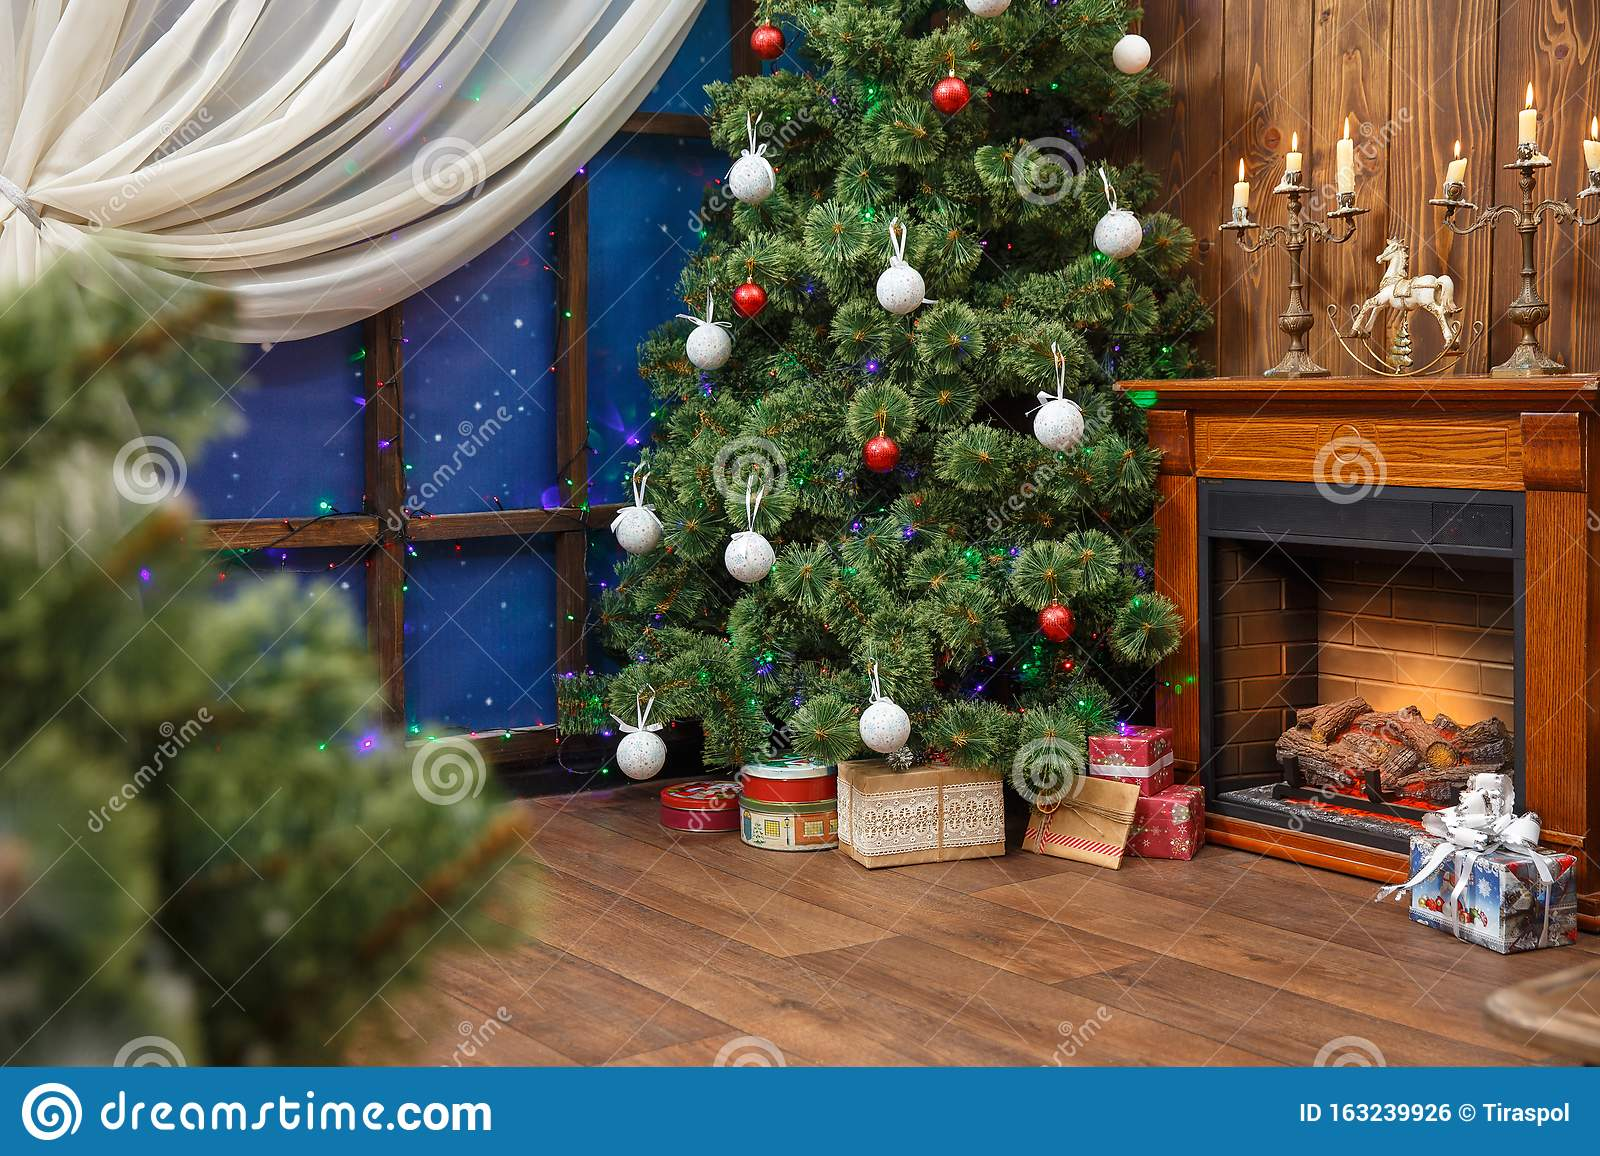 Christmas Interior With Toys And Lots Of Candles Wooden Fake Fireplace Christmas Tree Boxes In Studio Stock Photo Image Of Decor Nobody 163239926